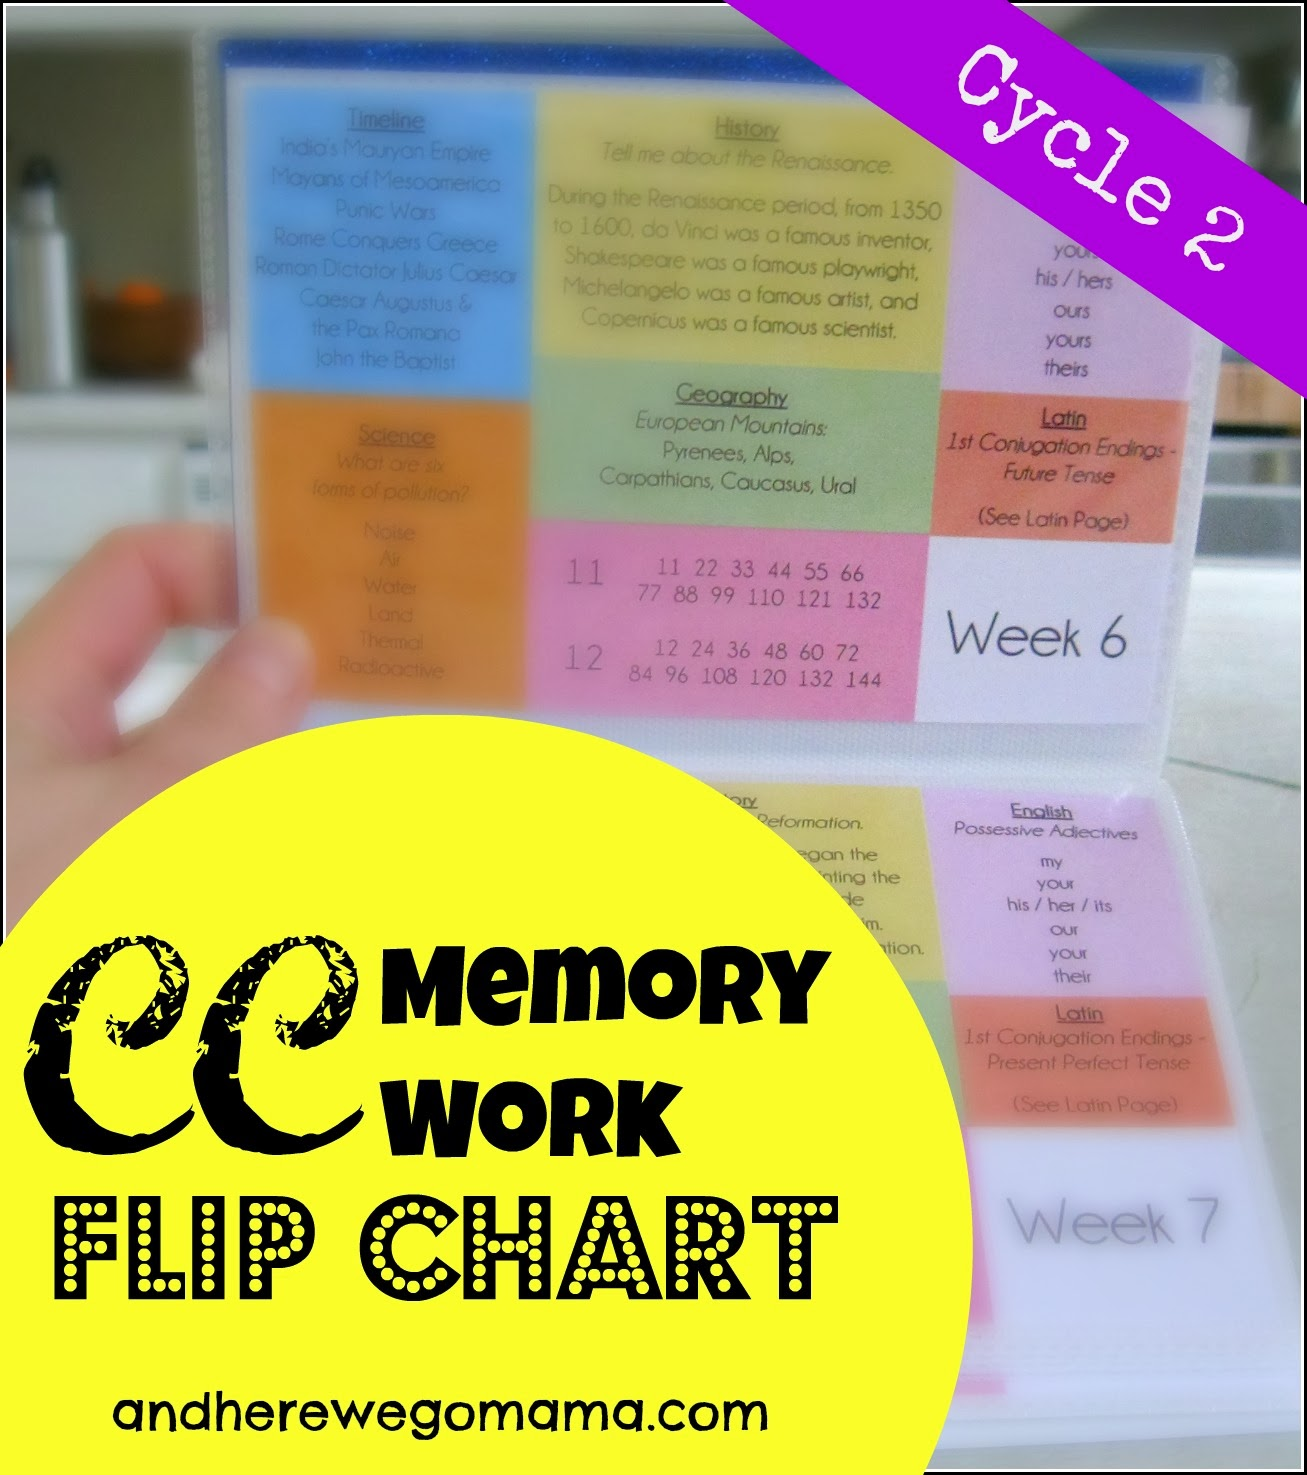 And here we go cycle 2 memory work flip chart cycle 2 memory work flip chart solutioingenieria Image collections